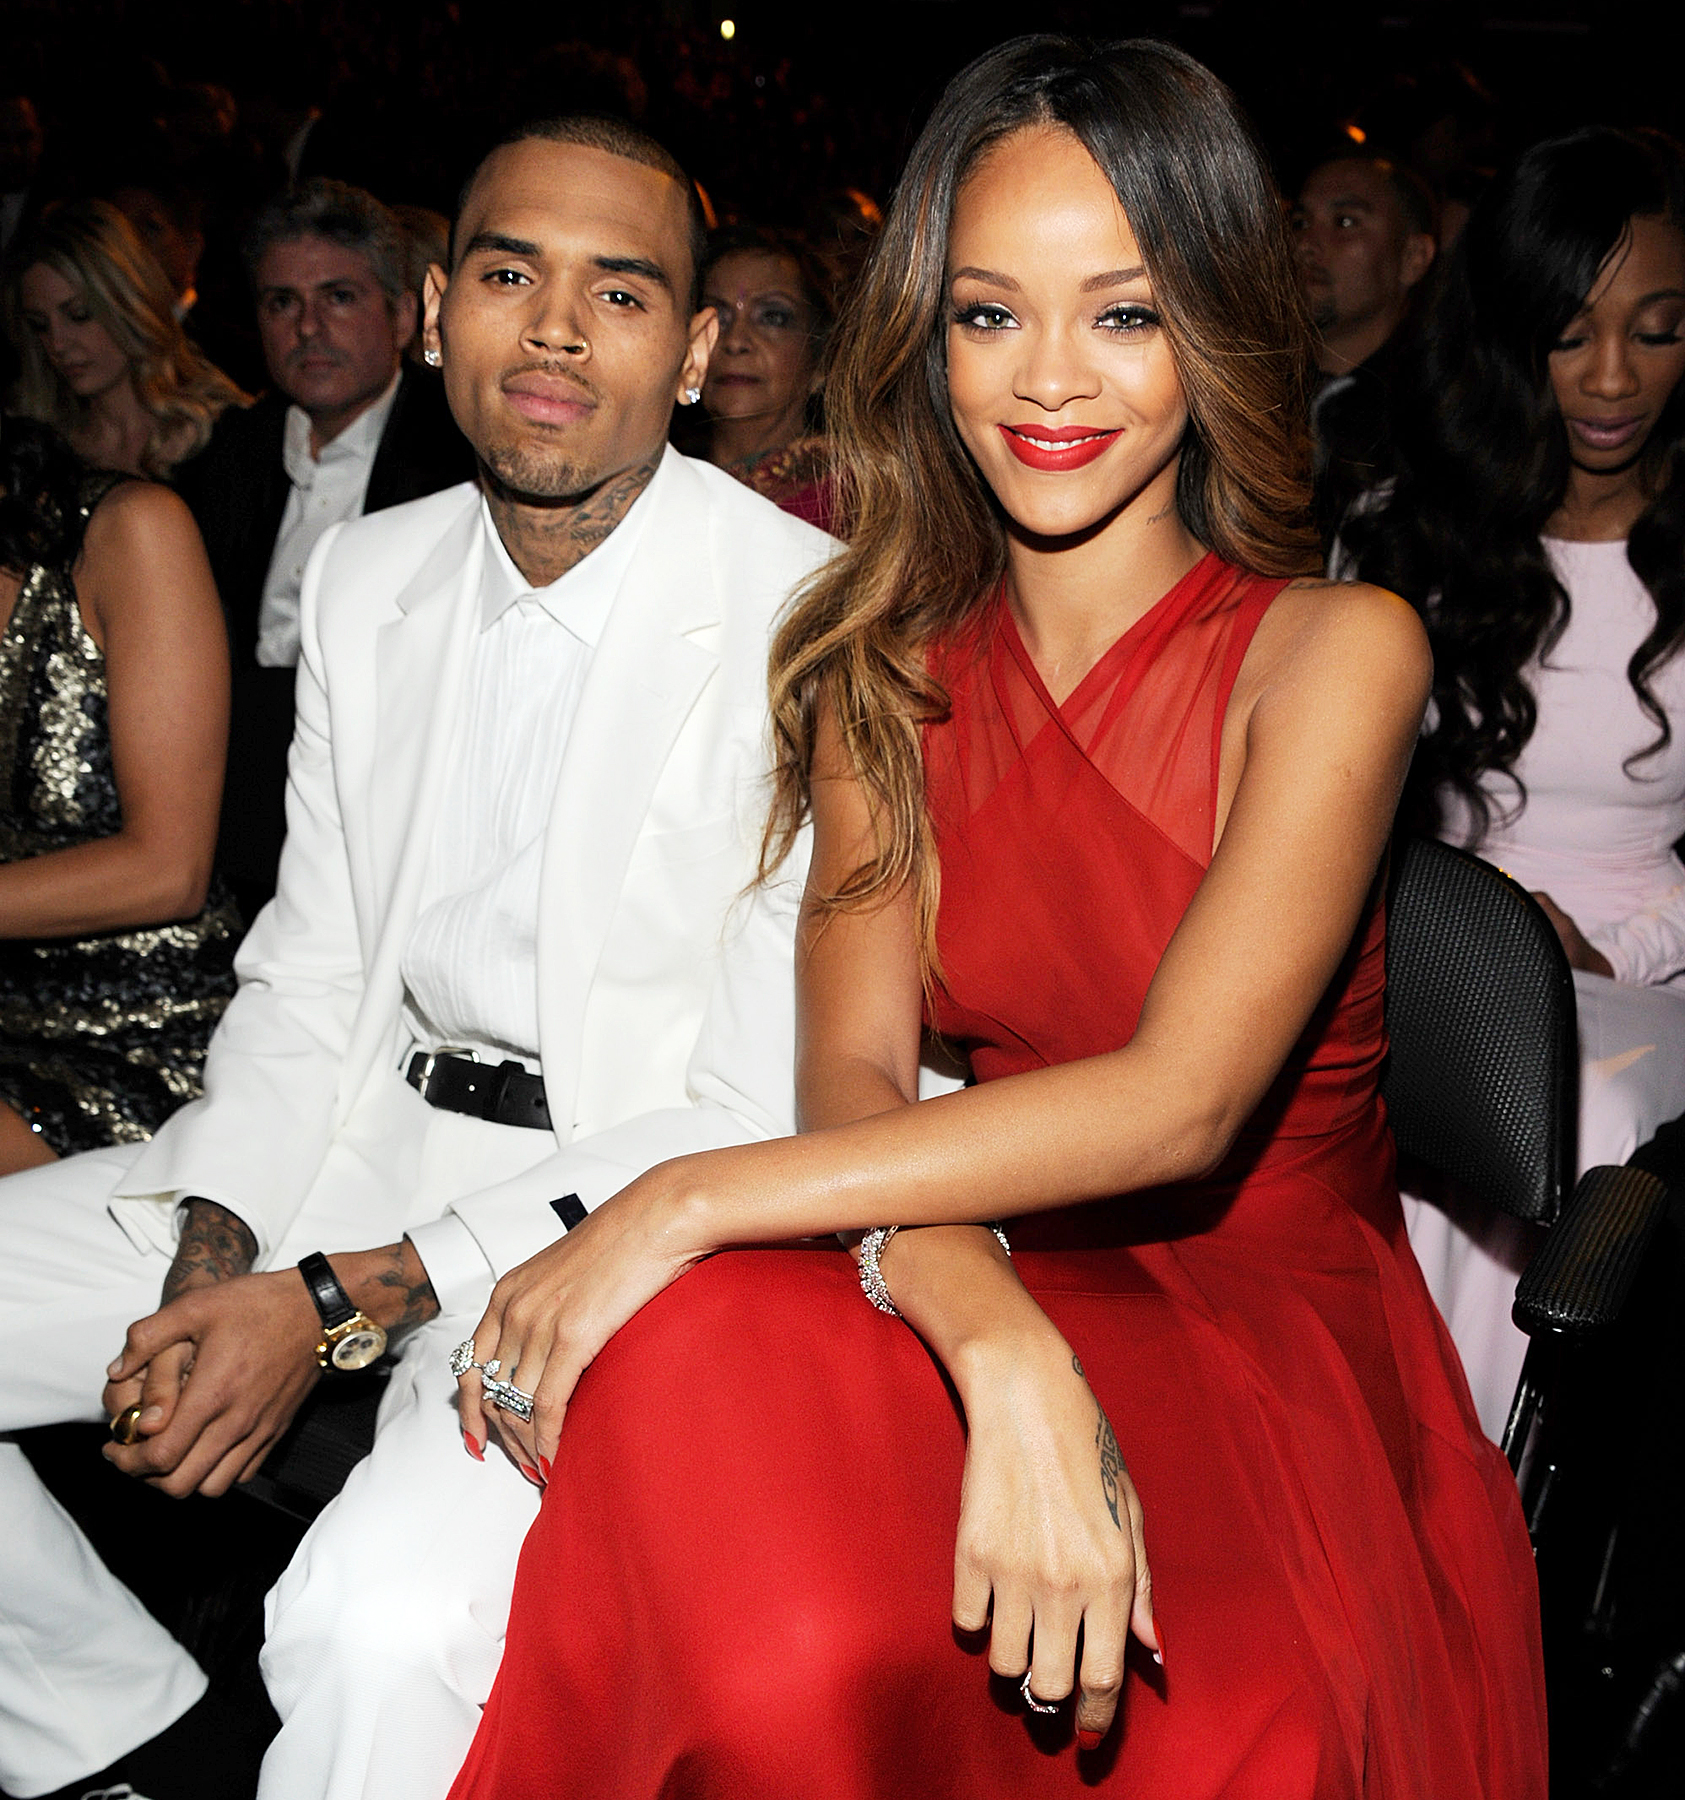 Rihanna and chris brown dating again 2018